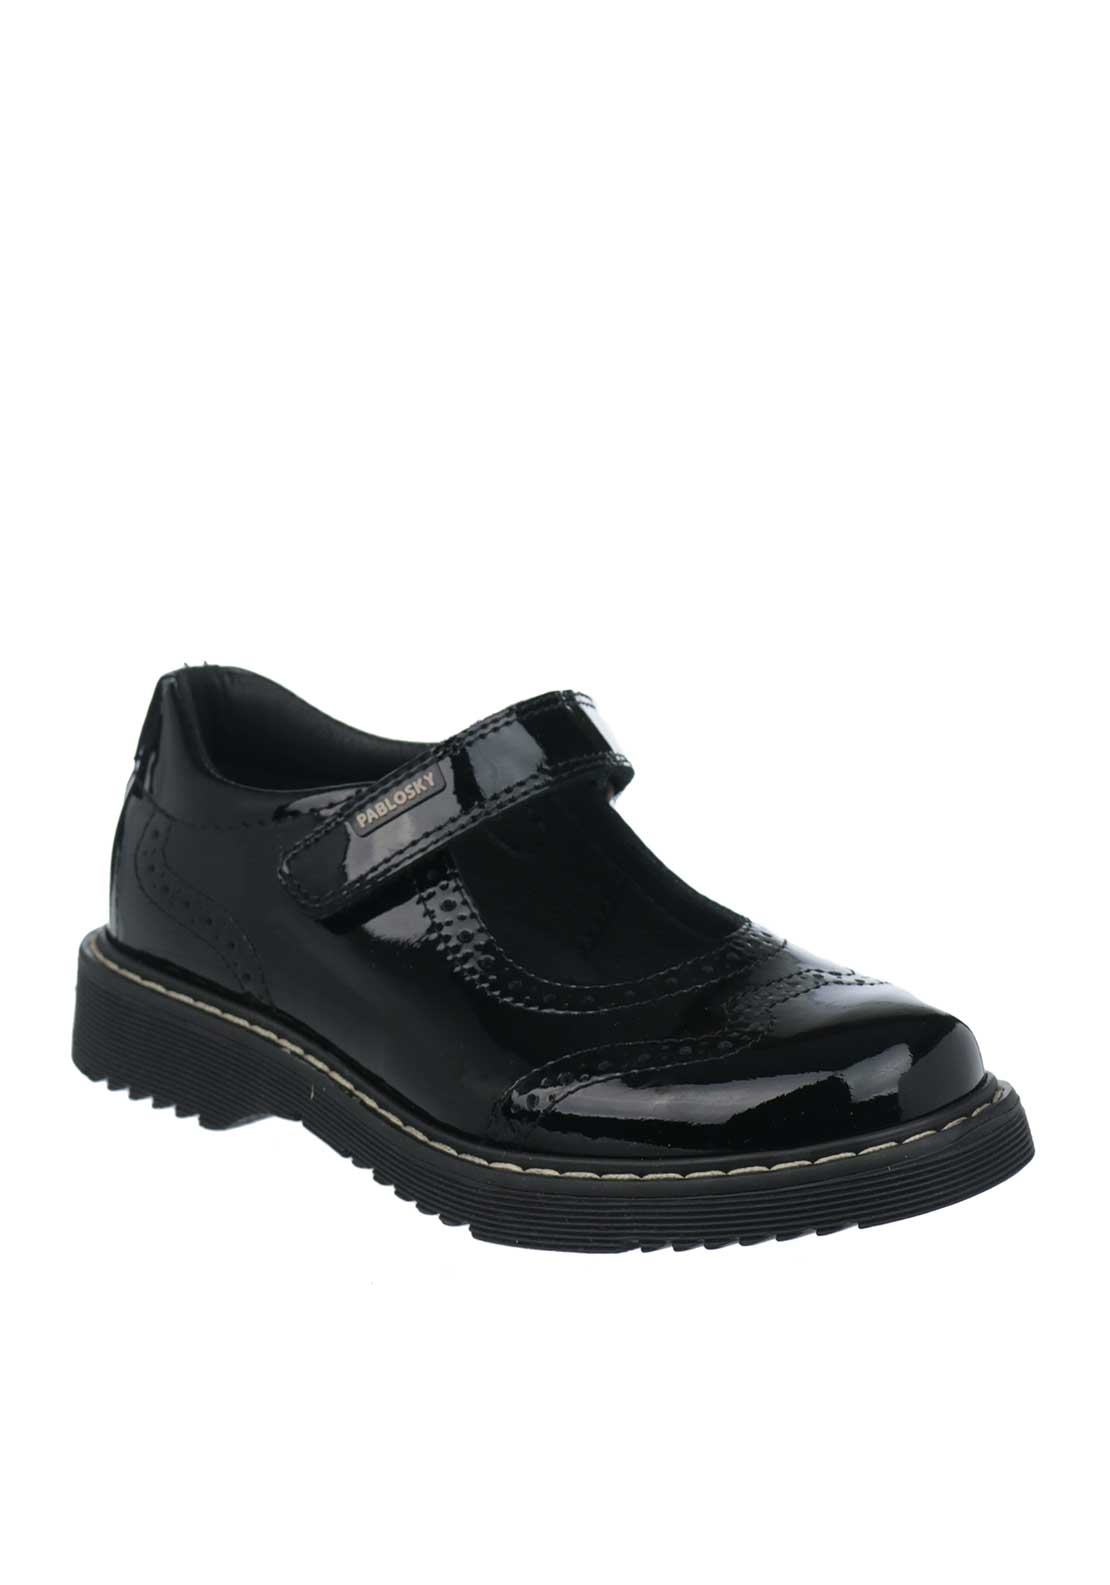 Pablosky Girls Patent Leather Mary Jane School Shoes, Black